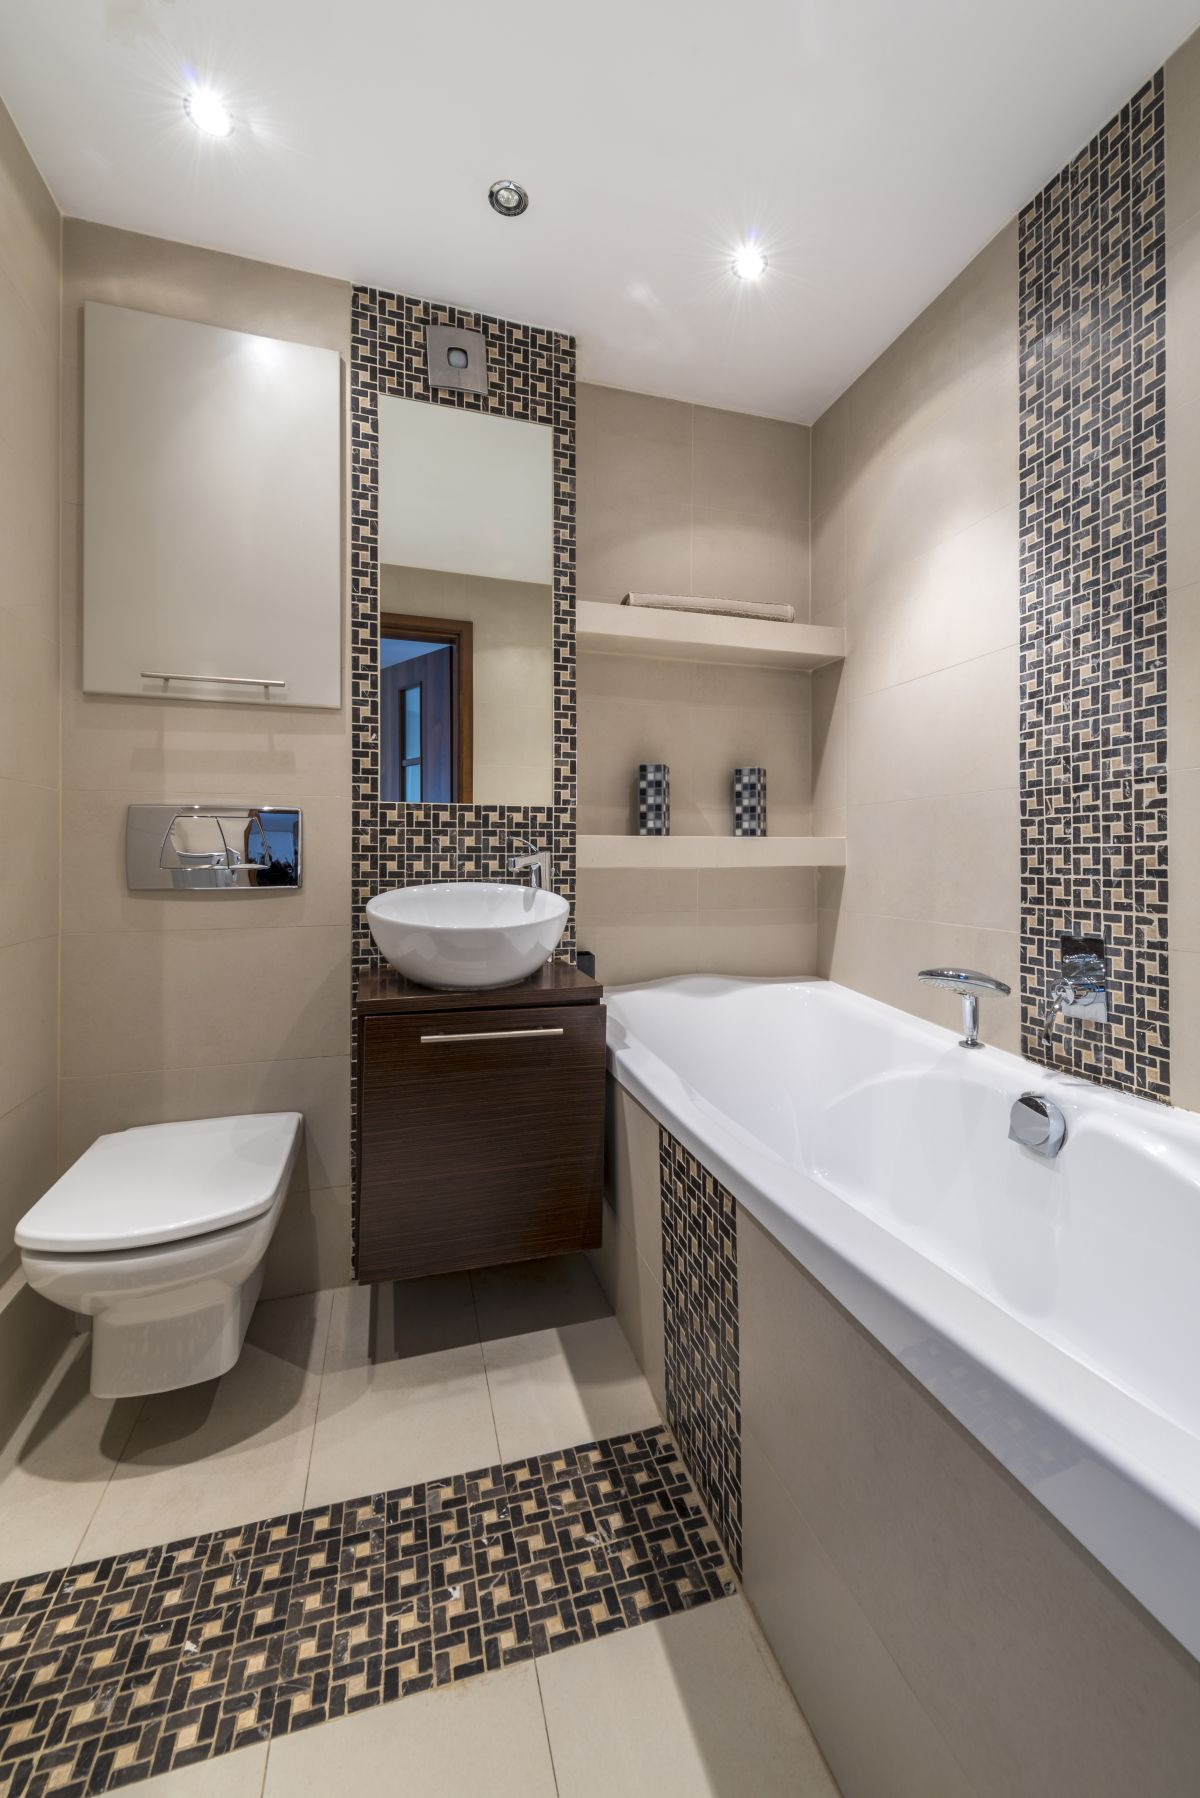 Average Cost For Small Bathroom Remodel Of Size Matters Bathroom Renovation Costs For Your Size Bath